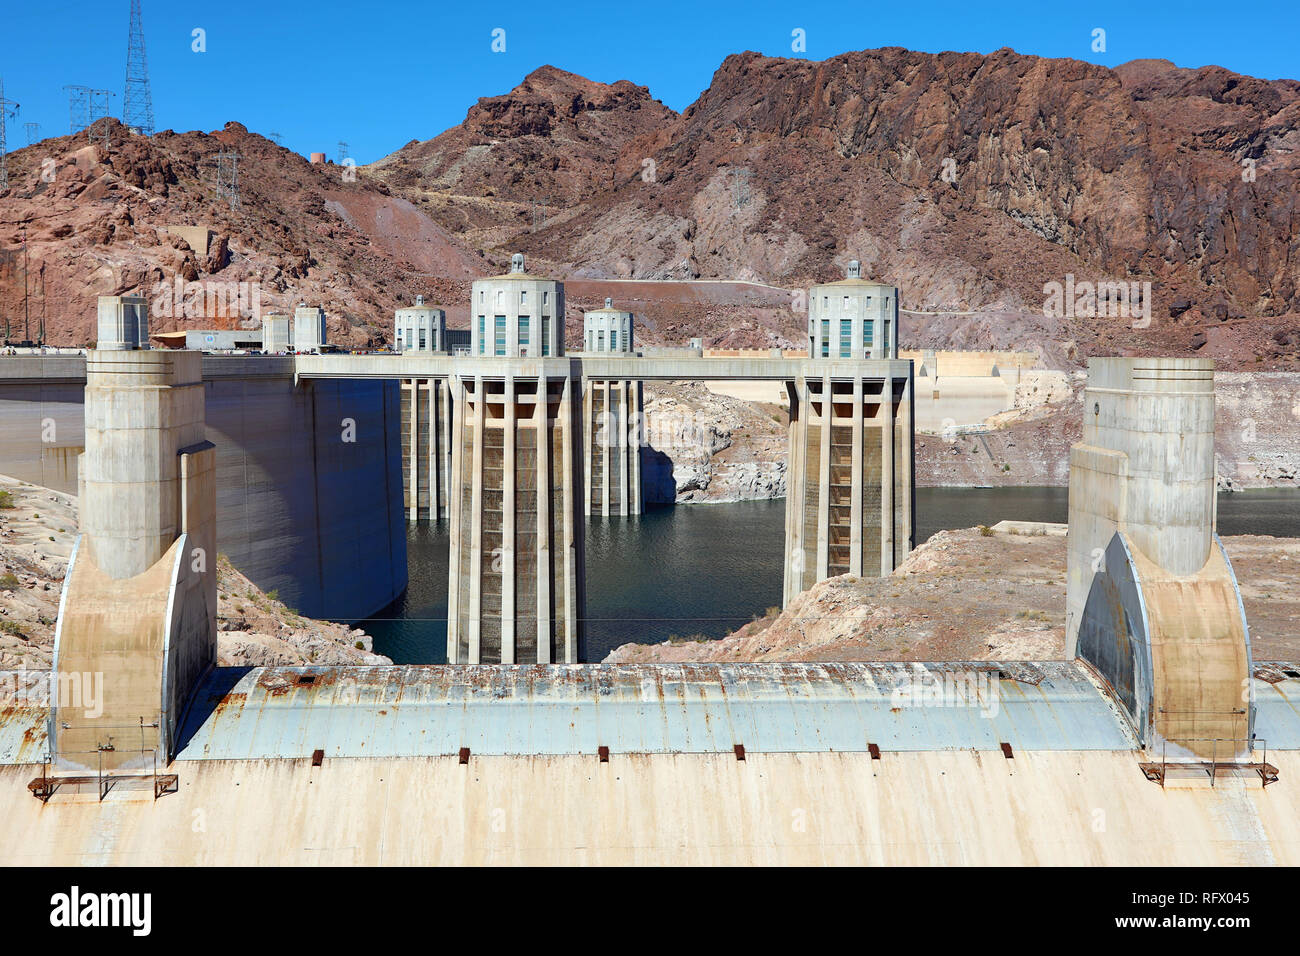 Hoover Dam hydroelectric dam on the border between Nevada and Arizona in the United States of America Stock Photo